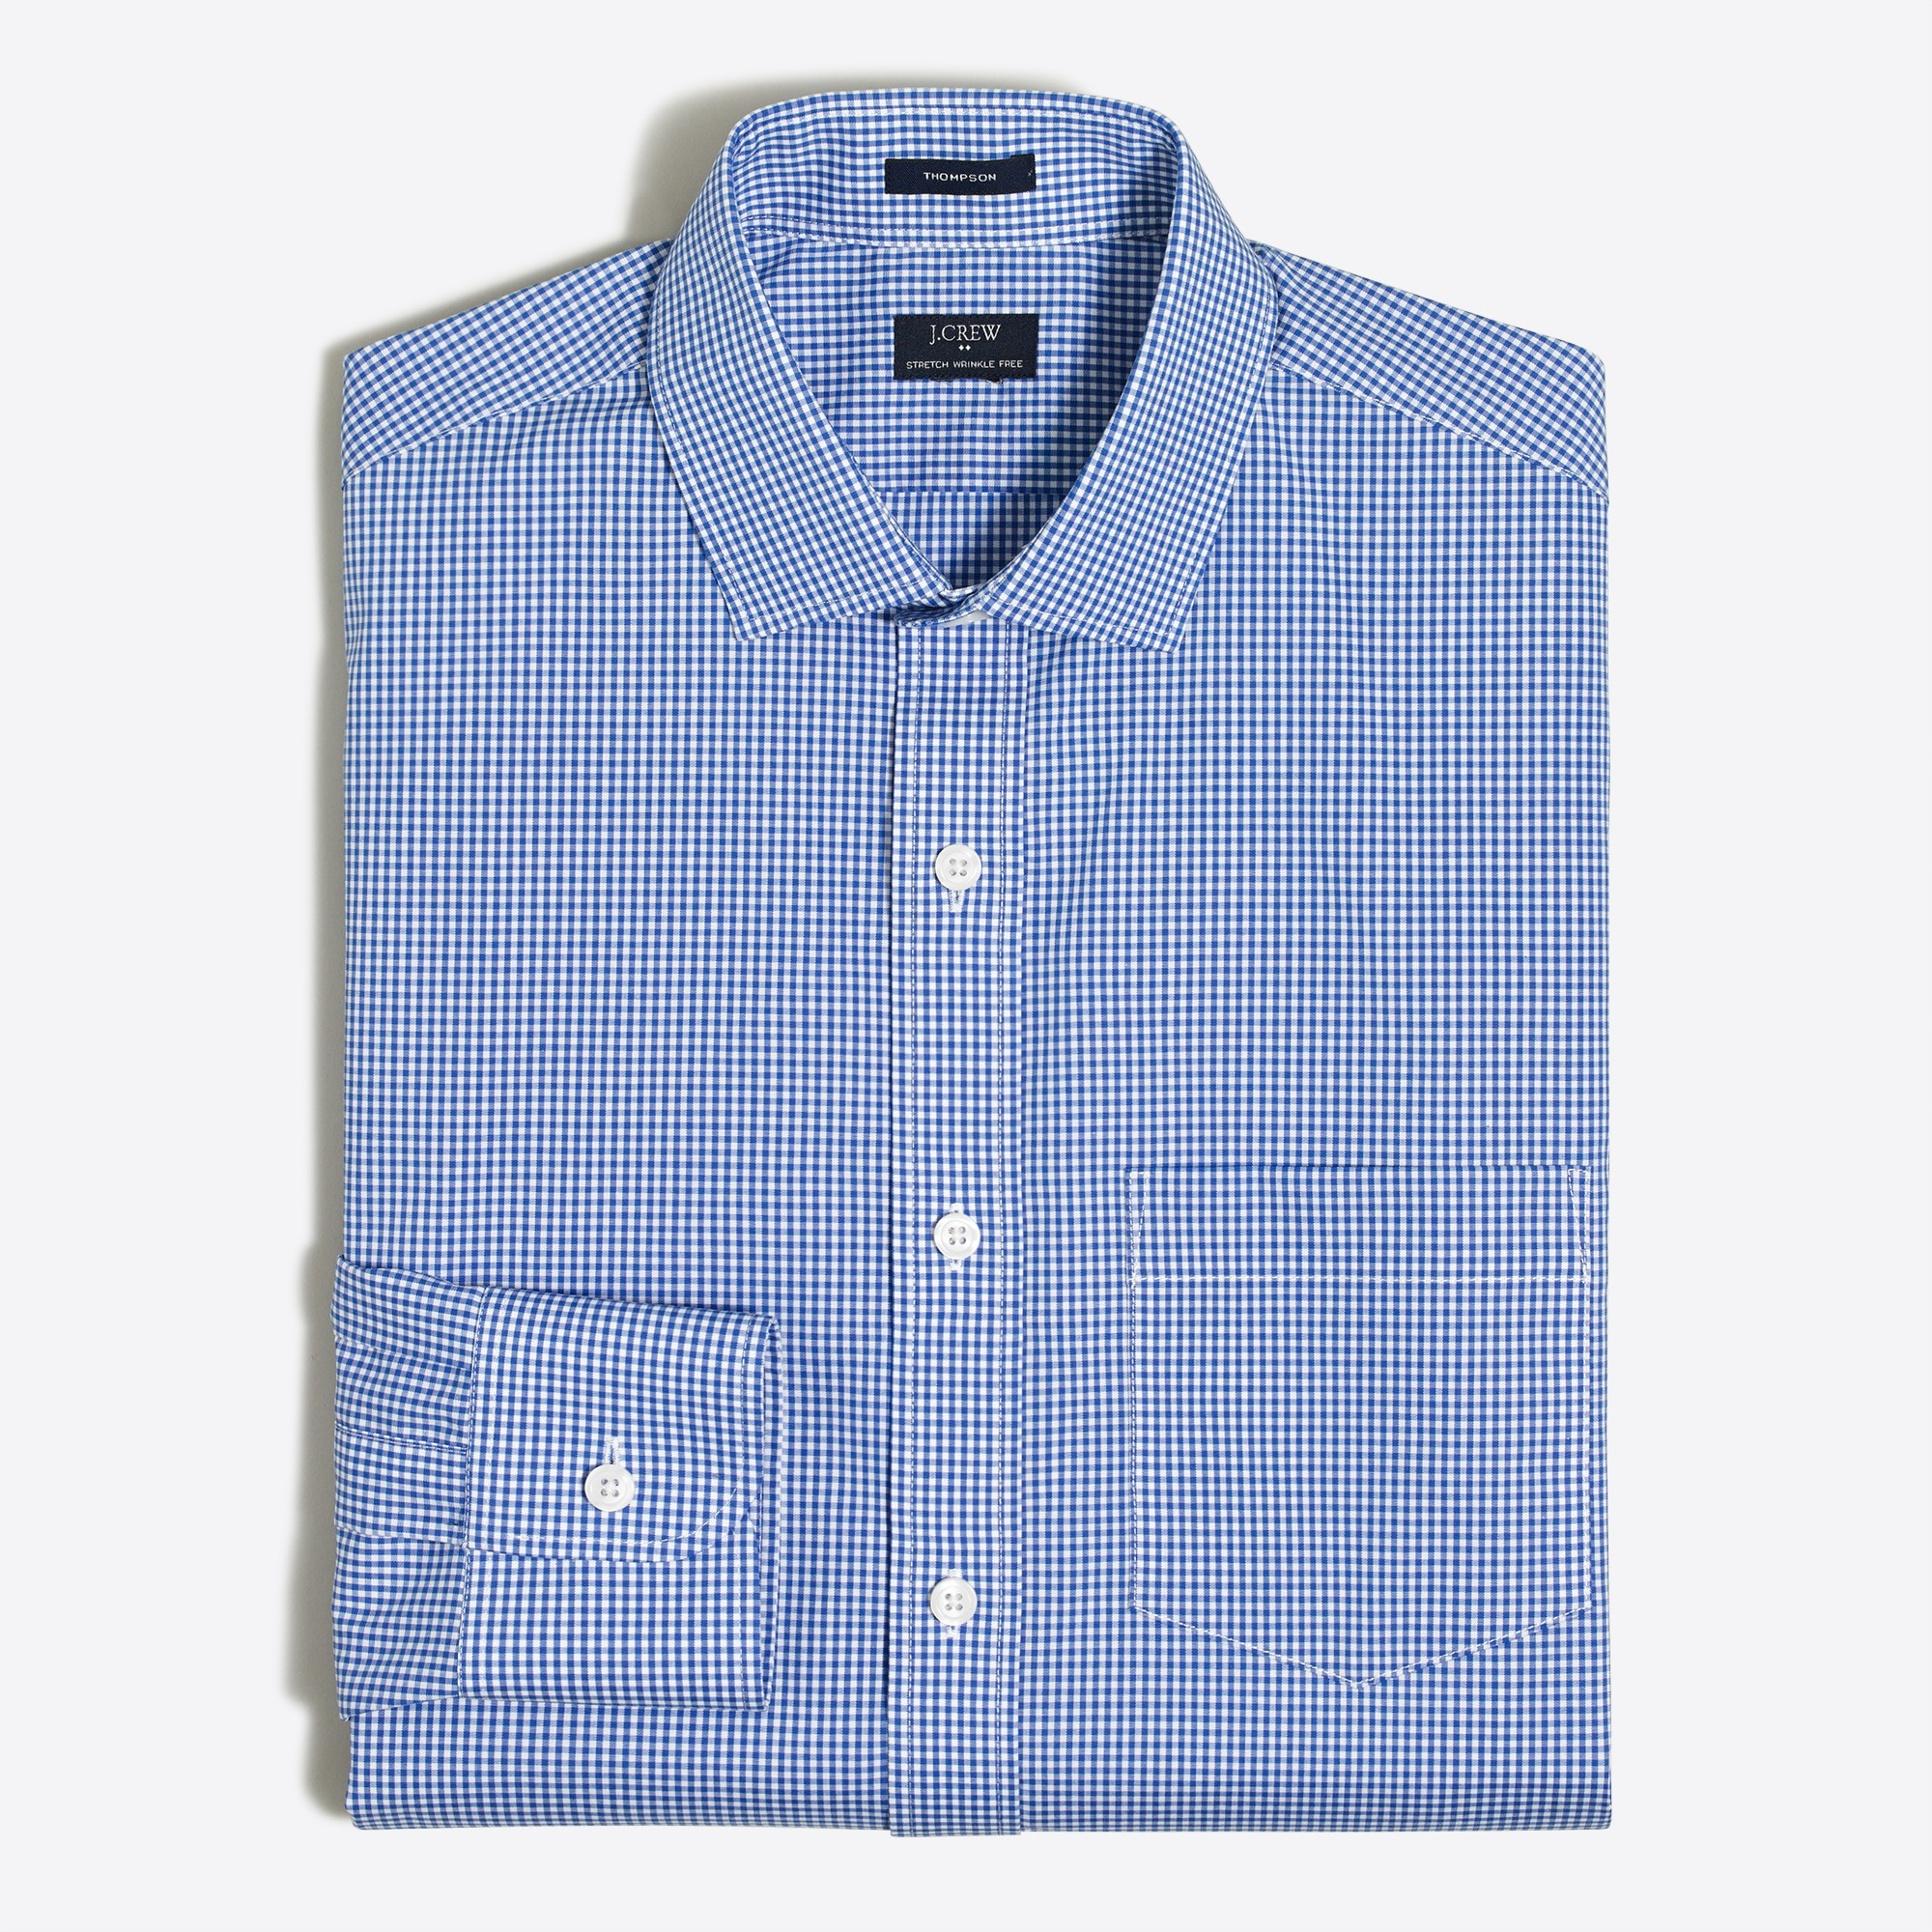 Image 1 for Mini-gingham flex wrinkle-free dress shirt